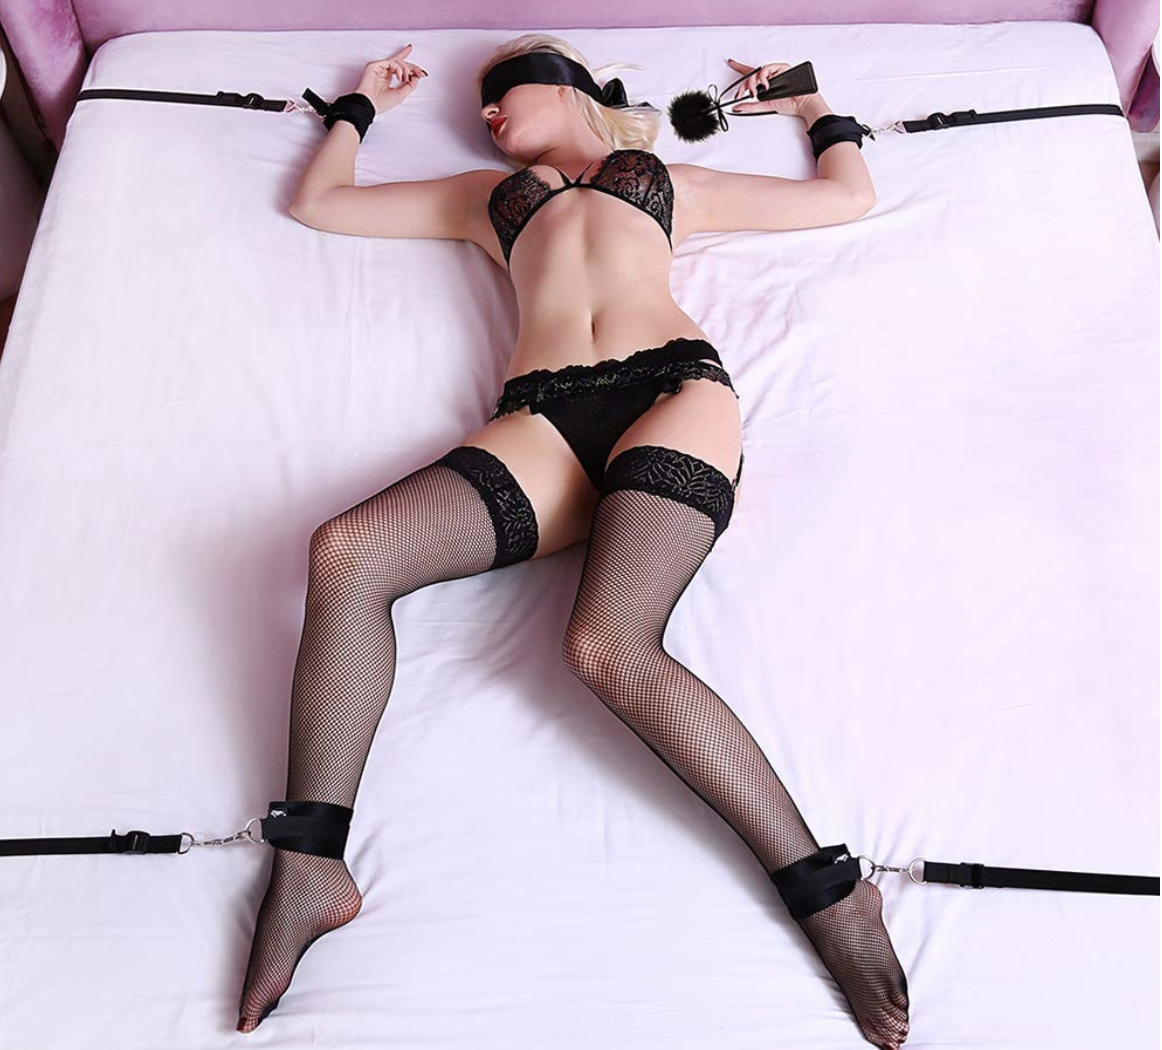 Utimi Fetish Bed Restraint Sex Set